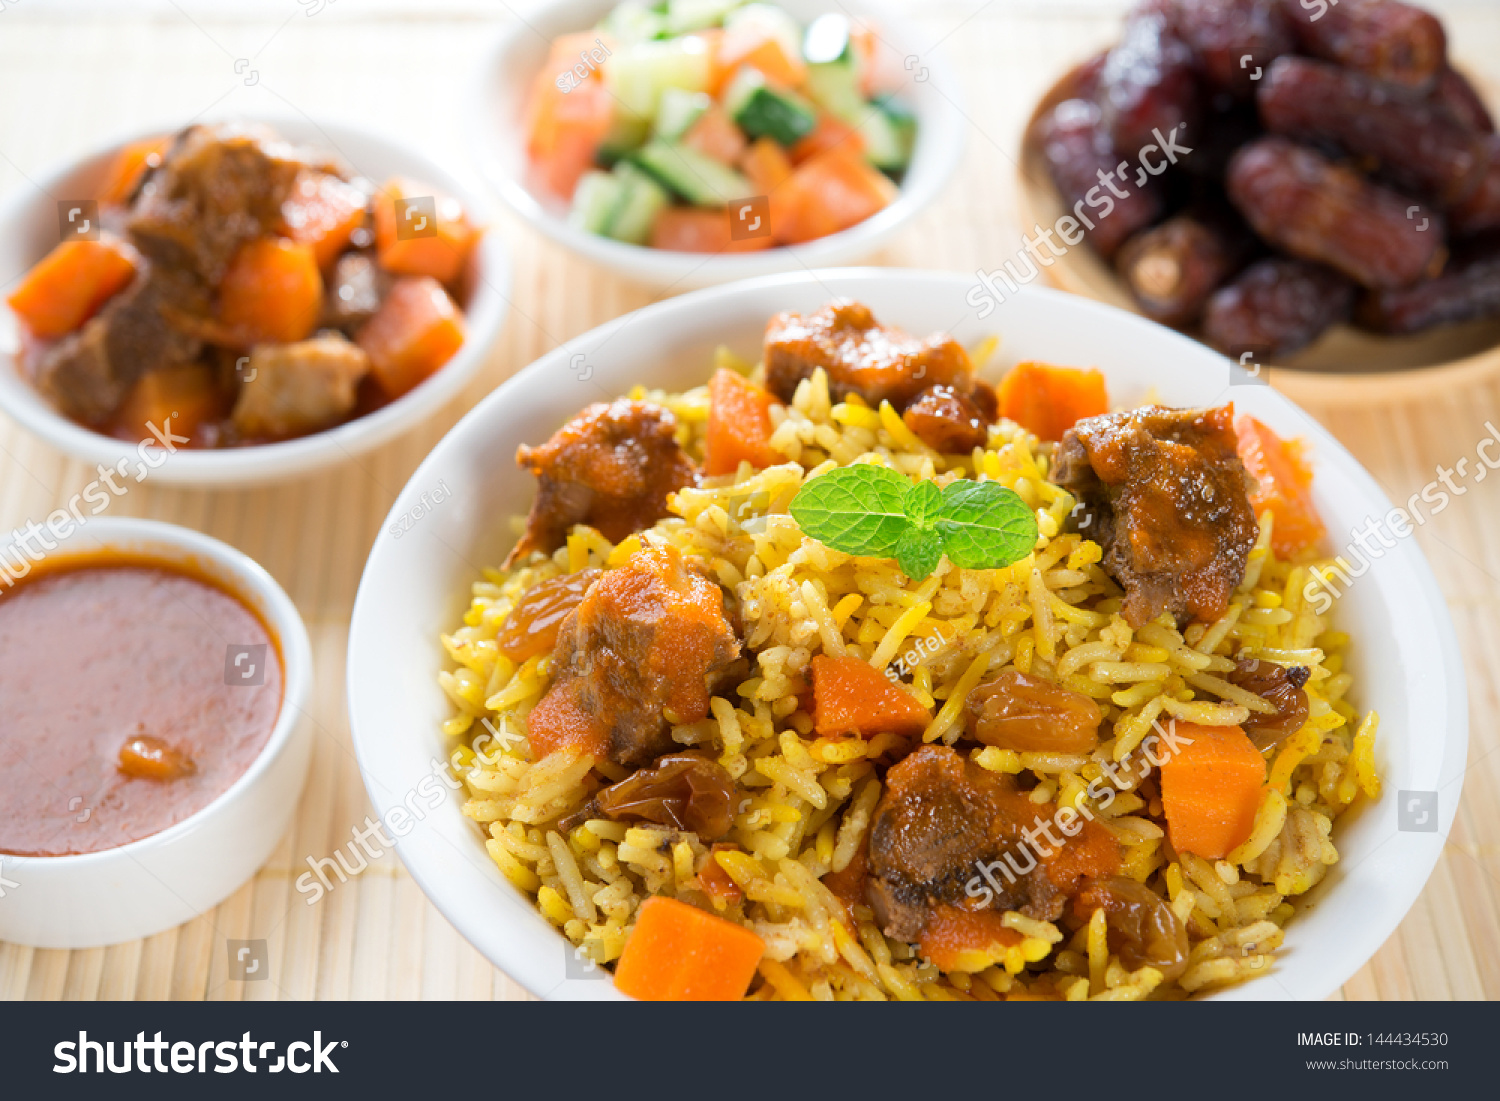 Arab rice ramadan food middle eastern stock photo for Algerie cuisine ramadan